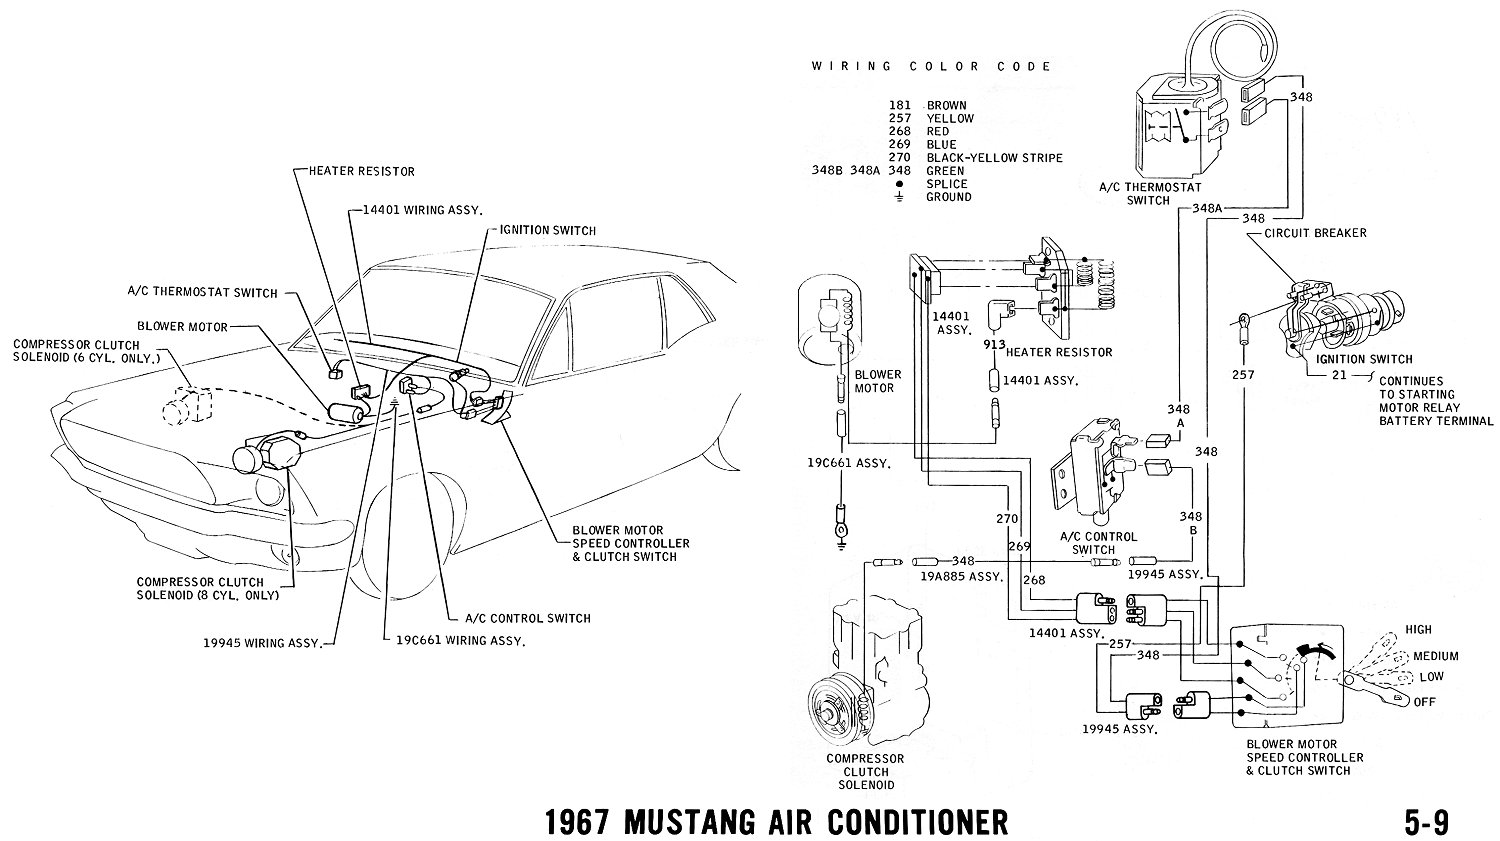 1966 mustang wiring schematic images 1966 thunderbird vacuum line diagram as well 1968 mustang ac vacuum